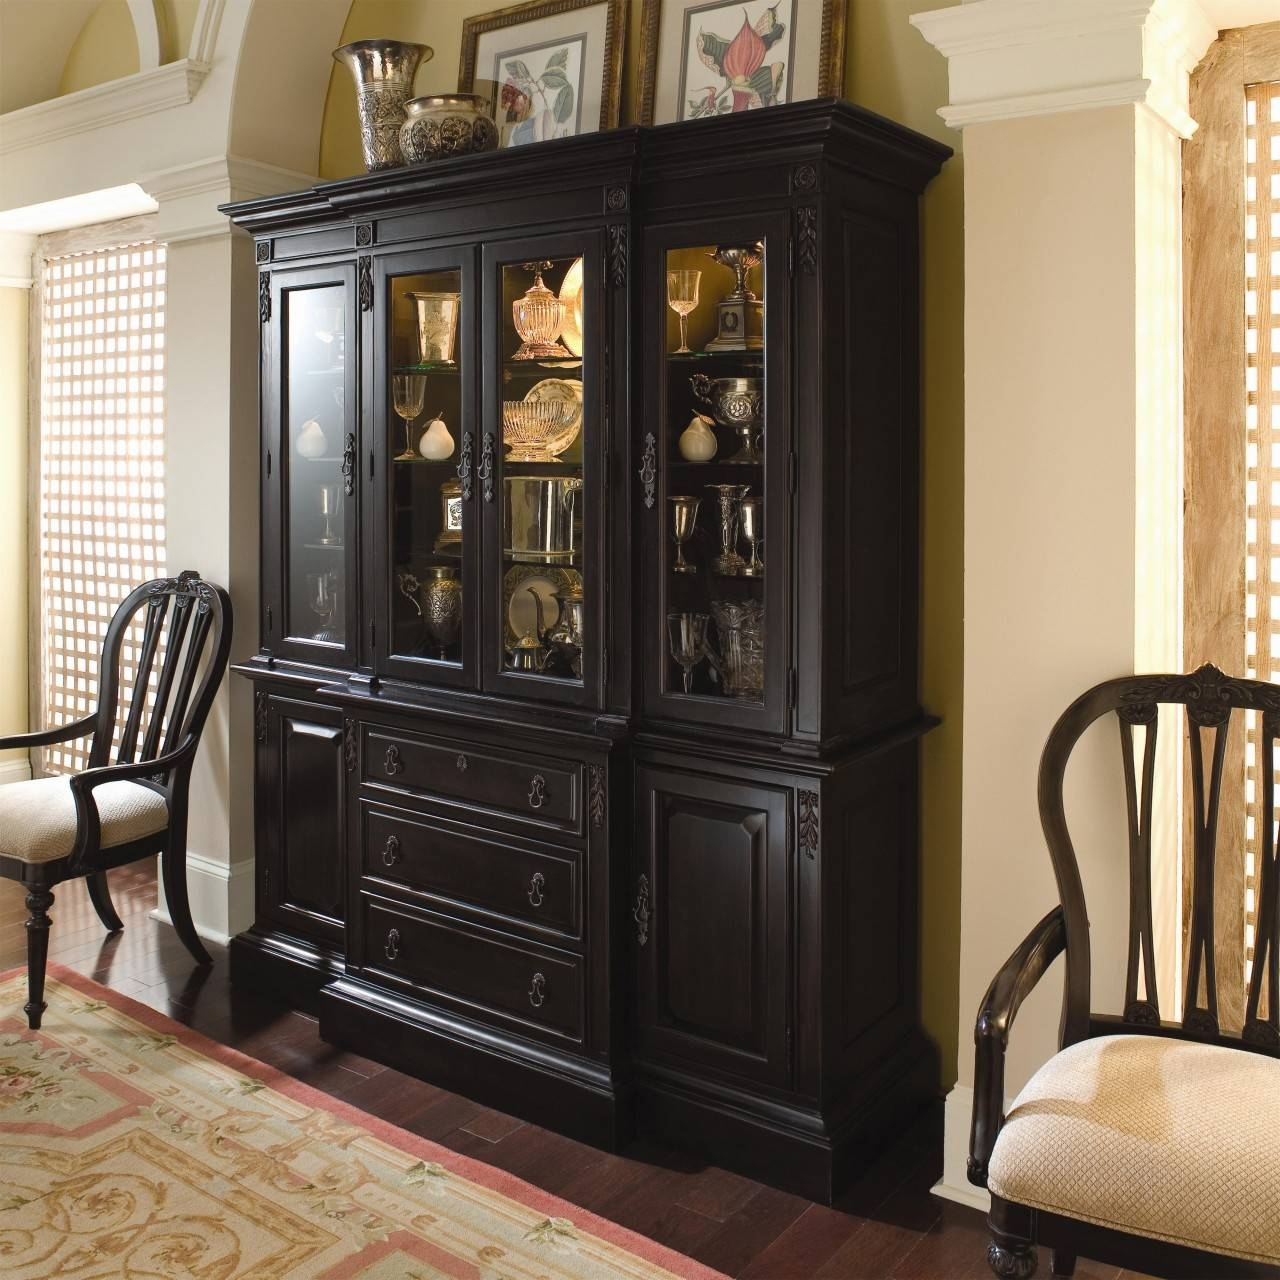 Dinning China Cabinet Dining Room Buffet Small Sideboard Buffet with regard to Black Dining Room Sideboards (Image 12 of 15)